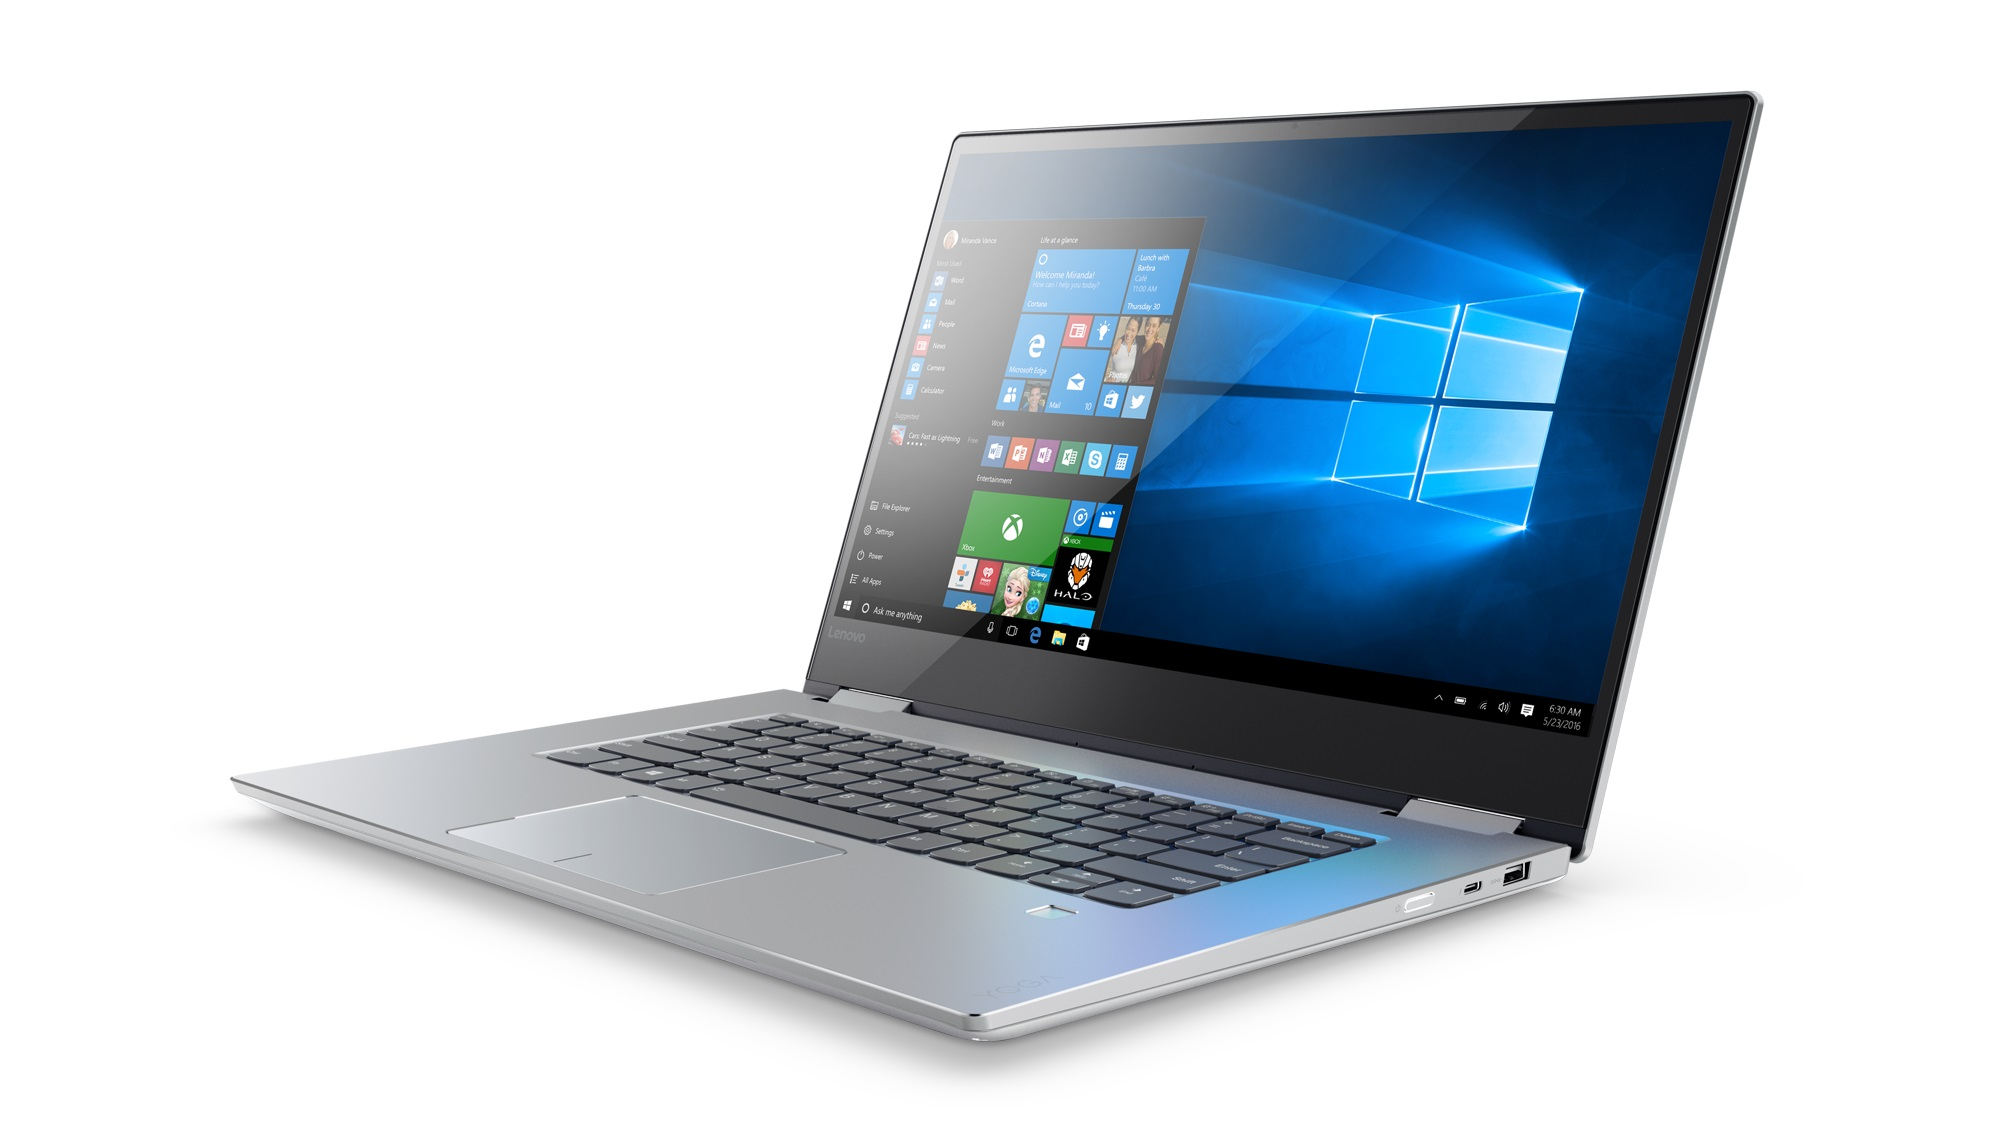 "Lenovo YOGA 720-15IKB i5-7300HQ 3,50GHz/8GB/SSD 256GB/15,6"" FHD/AG/multitouch/GeForce 2GB/WIN10 stříbrná 80X7000KCK"